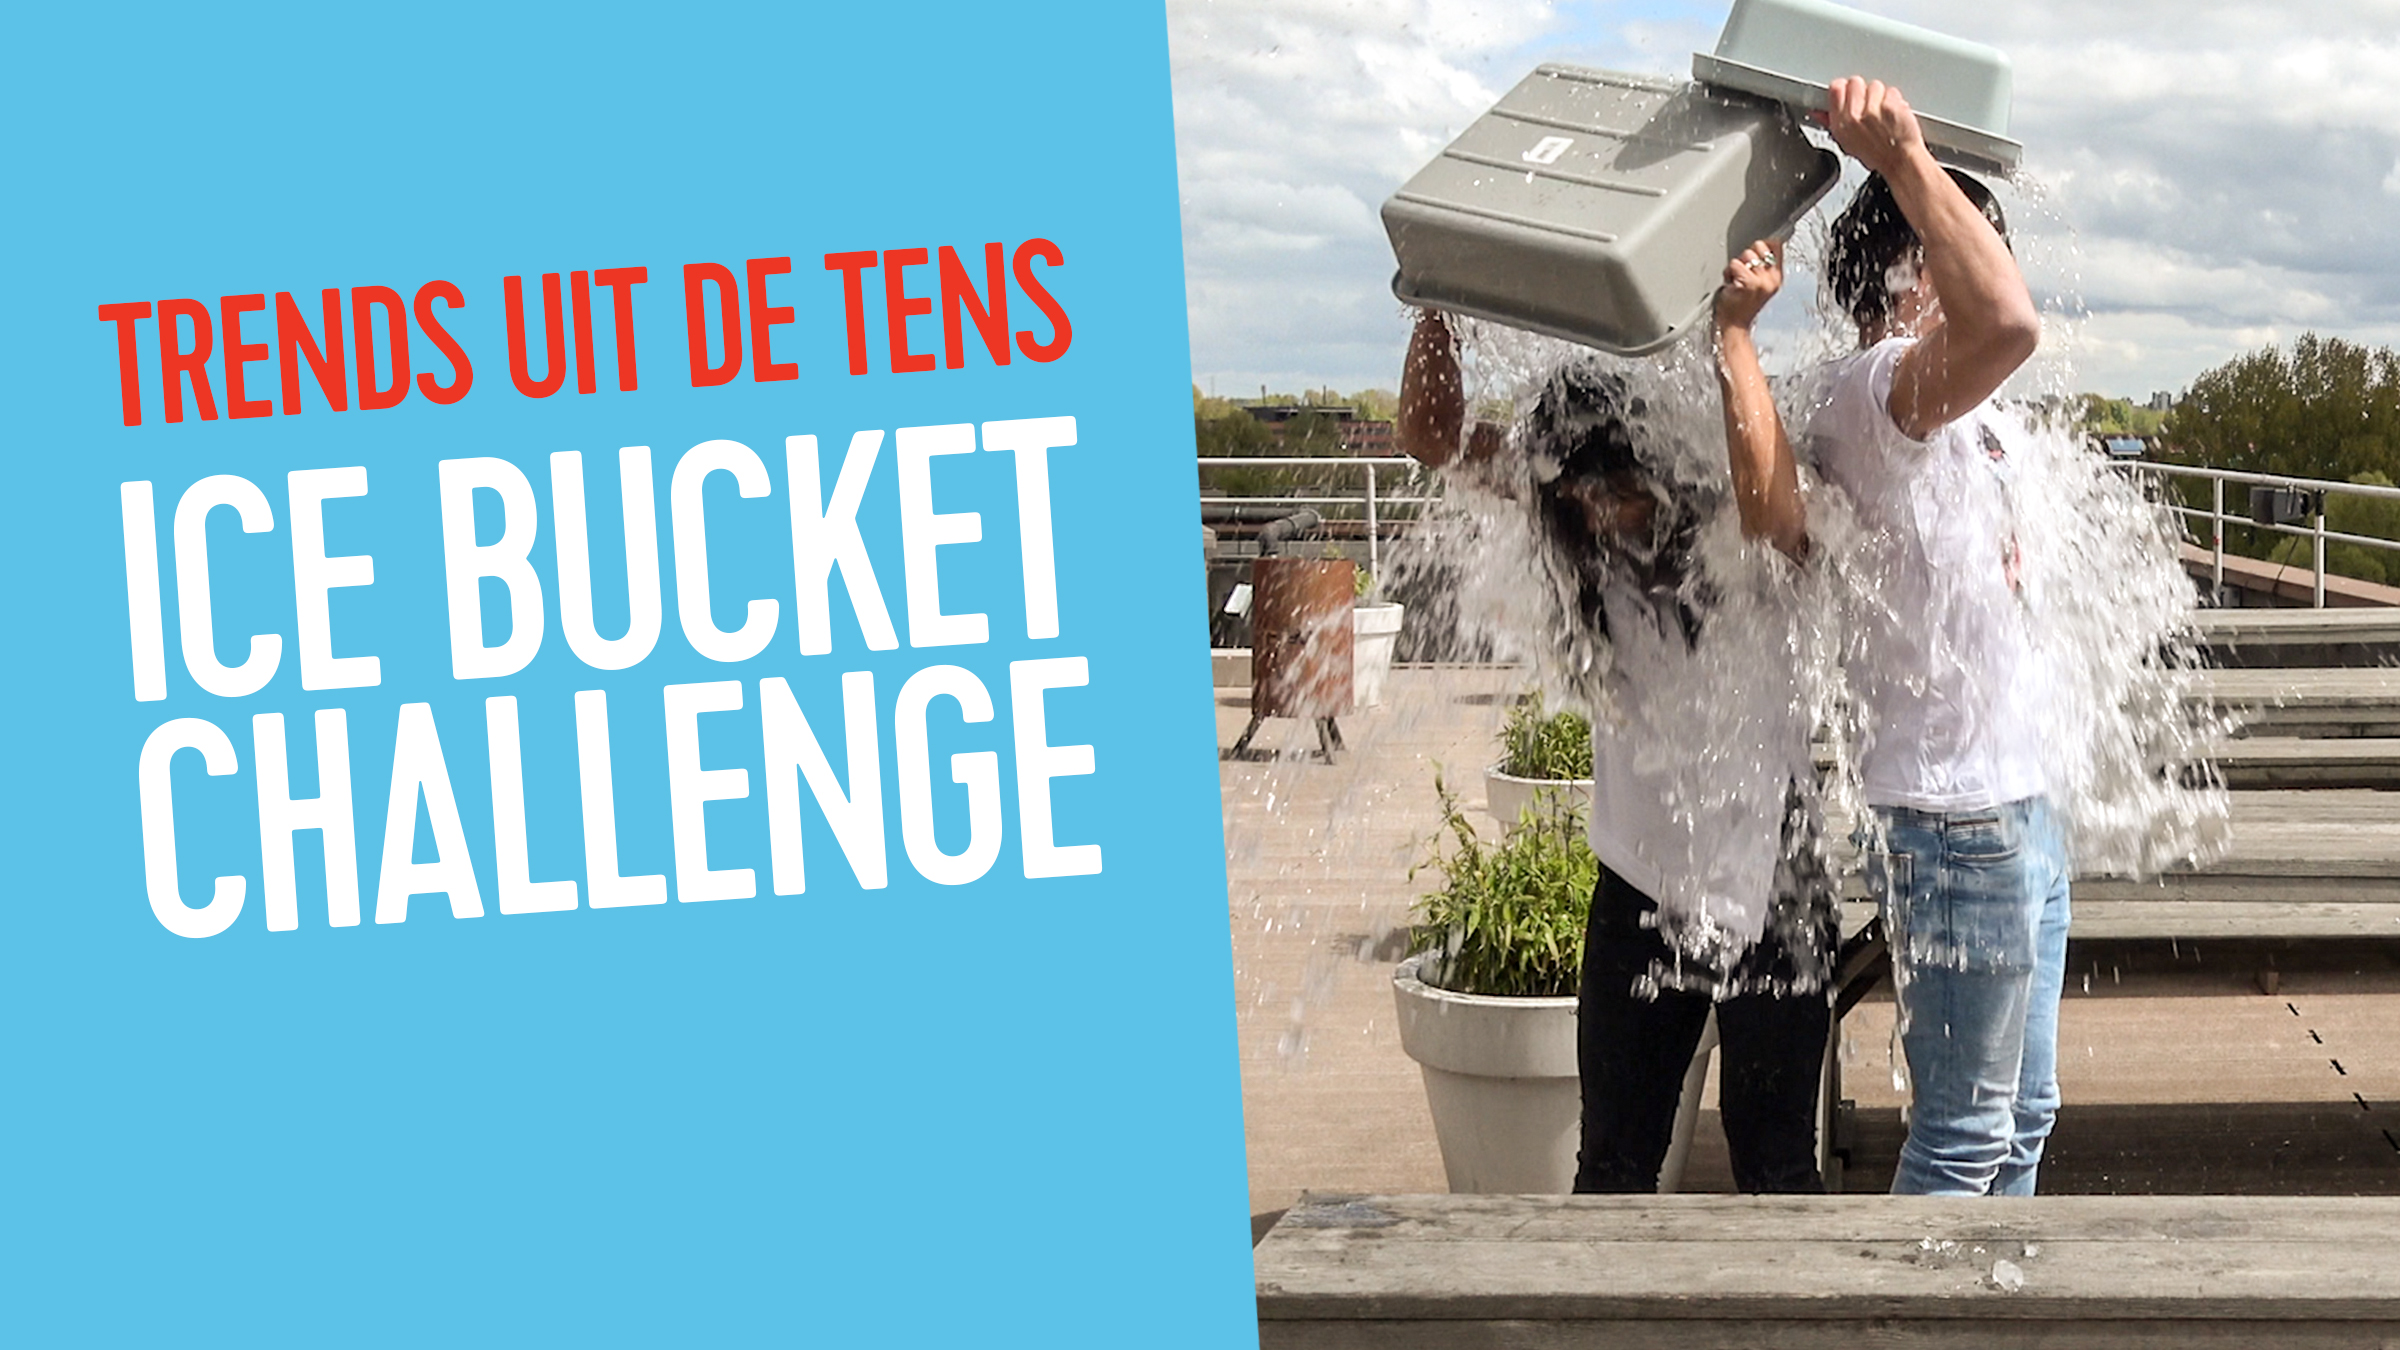 Ice bucket challenge   thumb